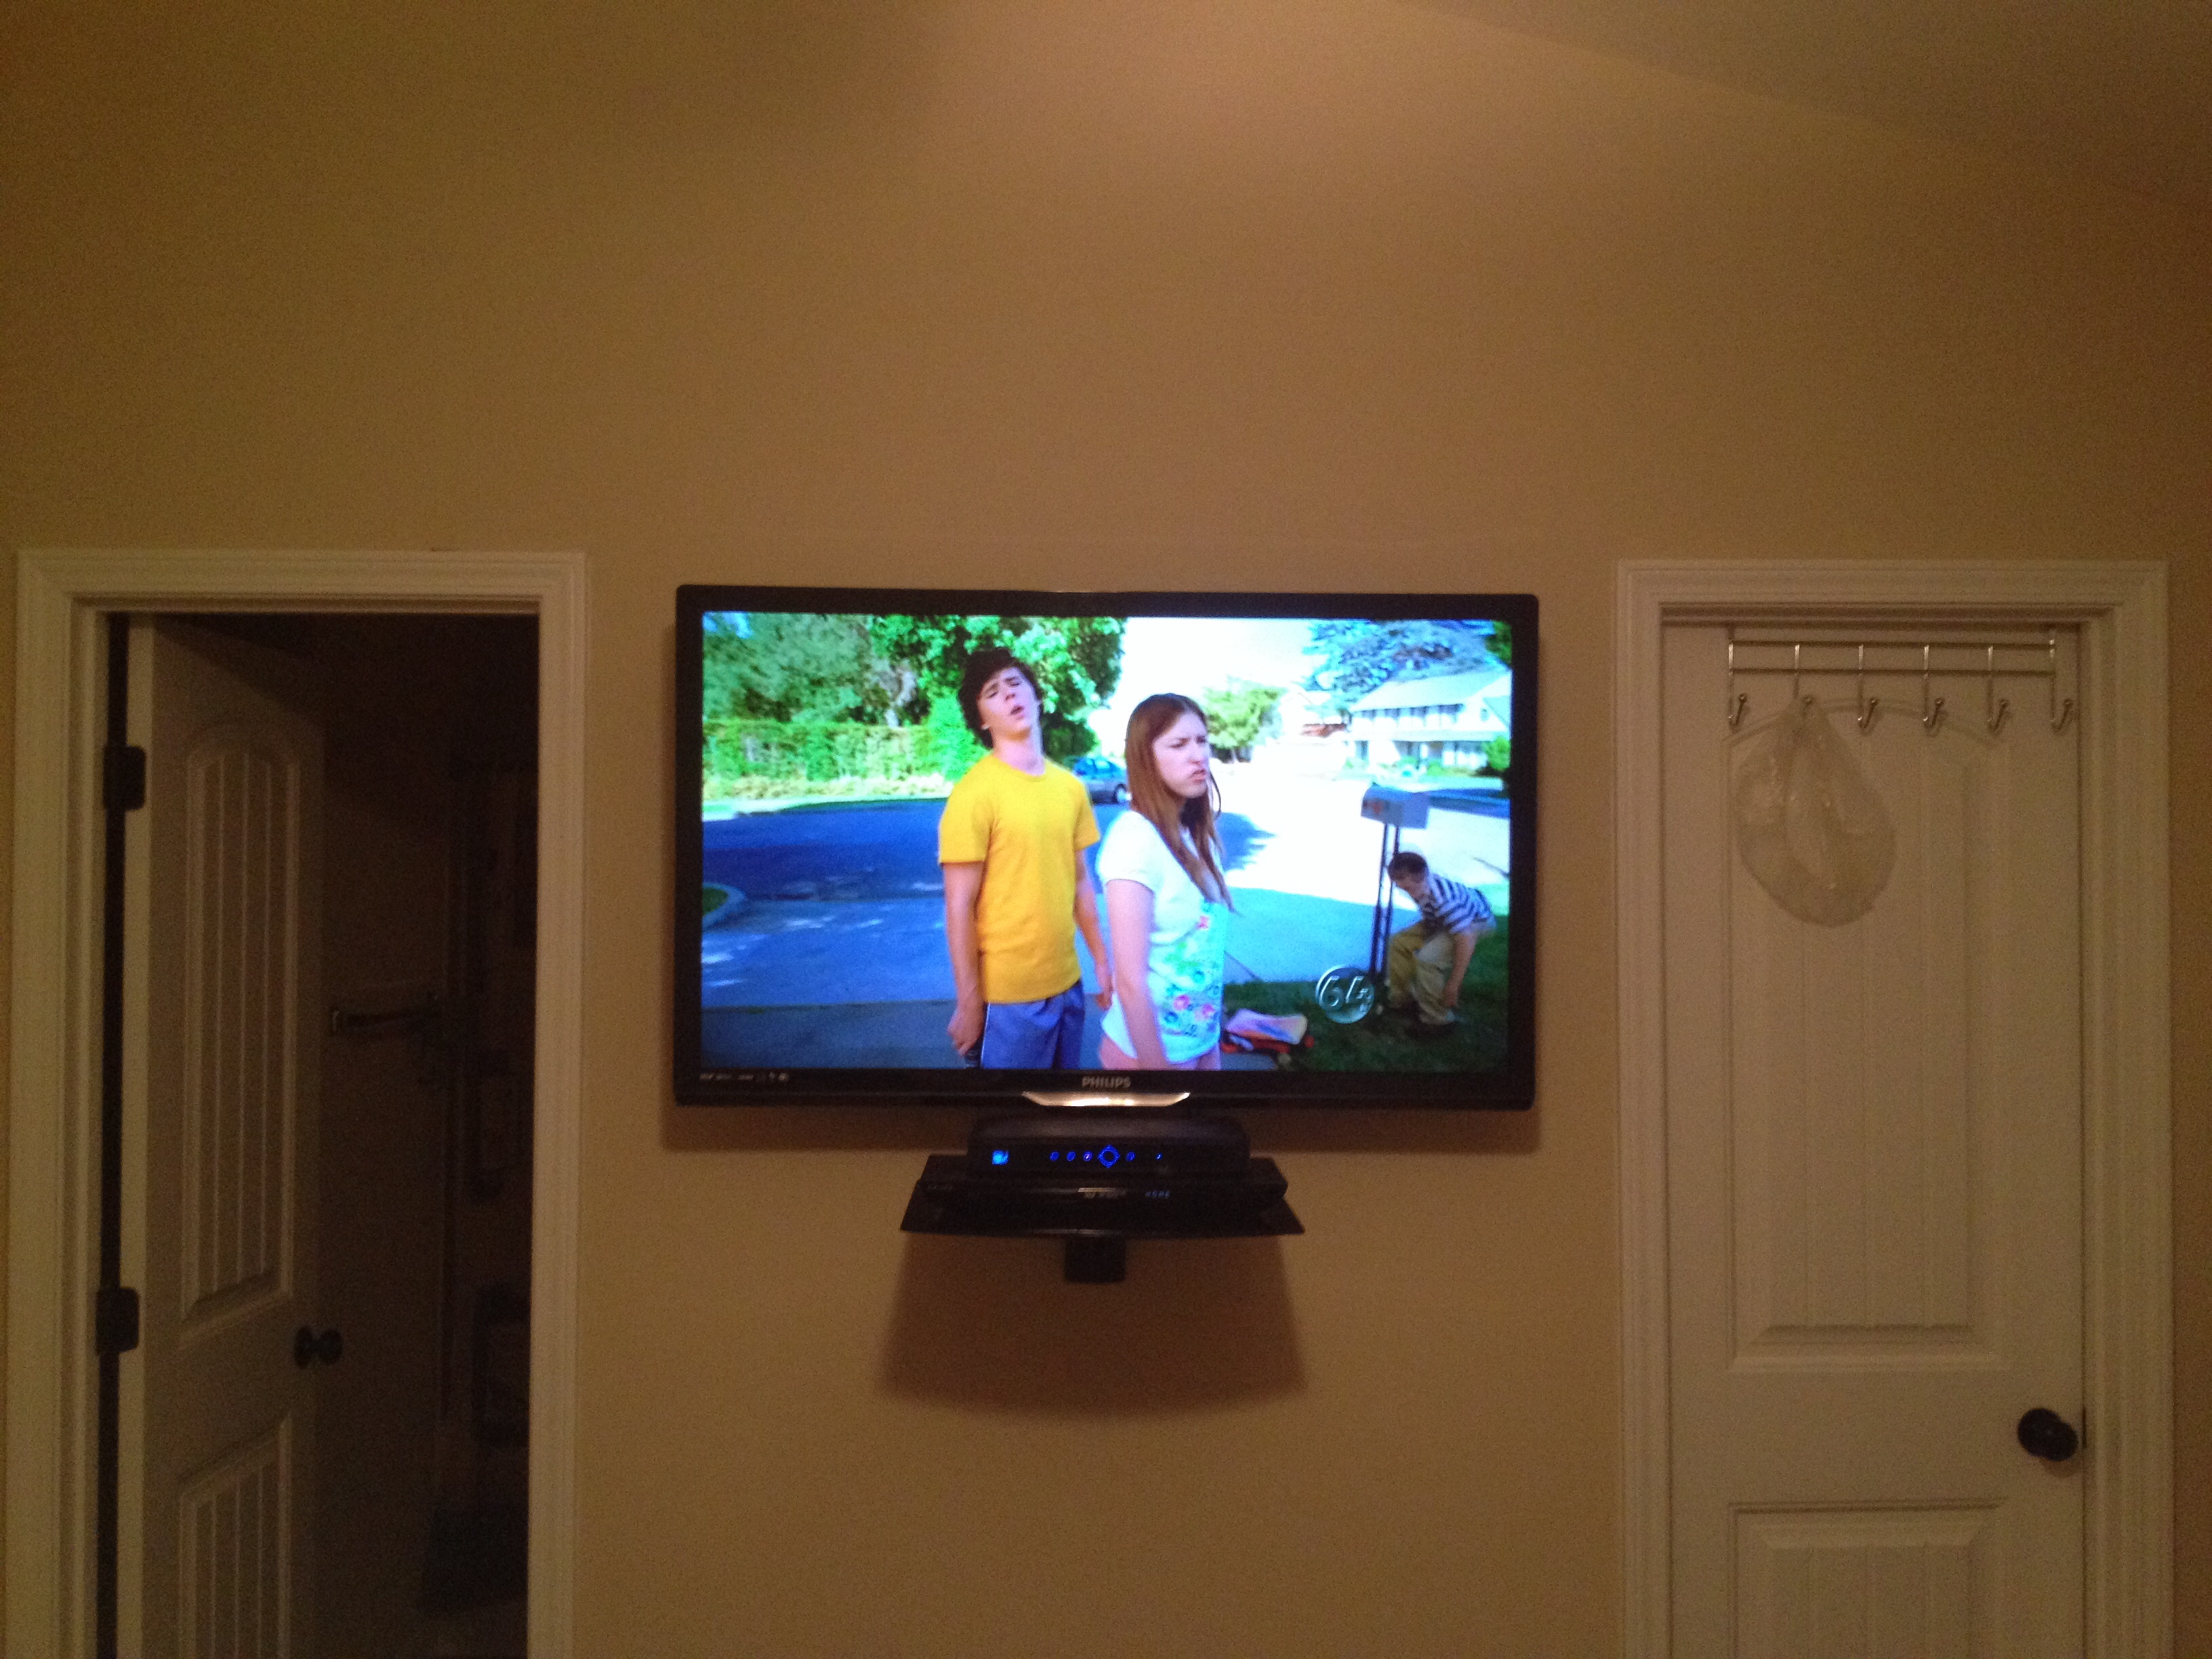 Led Tv Wall Mount Installation With Floating Glass Shelf For Cable Regarding Floating Glass Shelf For Dvd Player (Image 10 of 15)